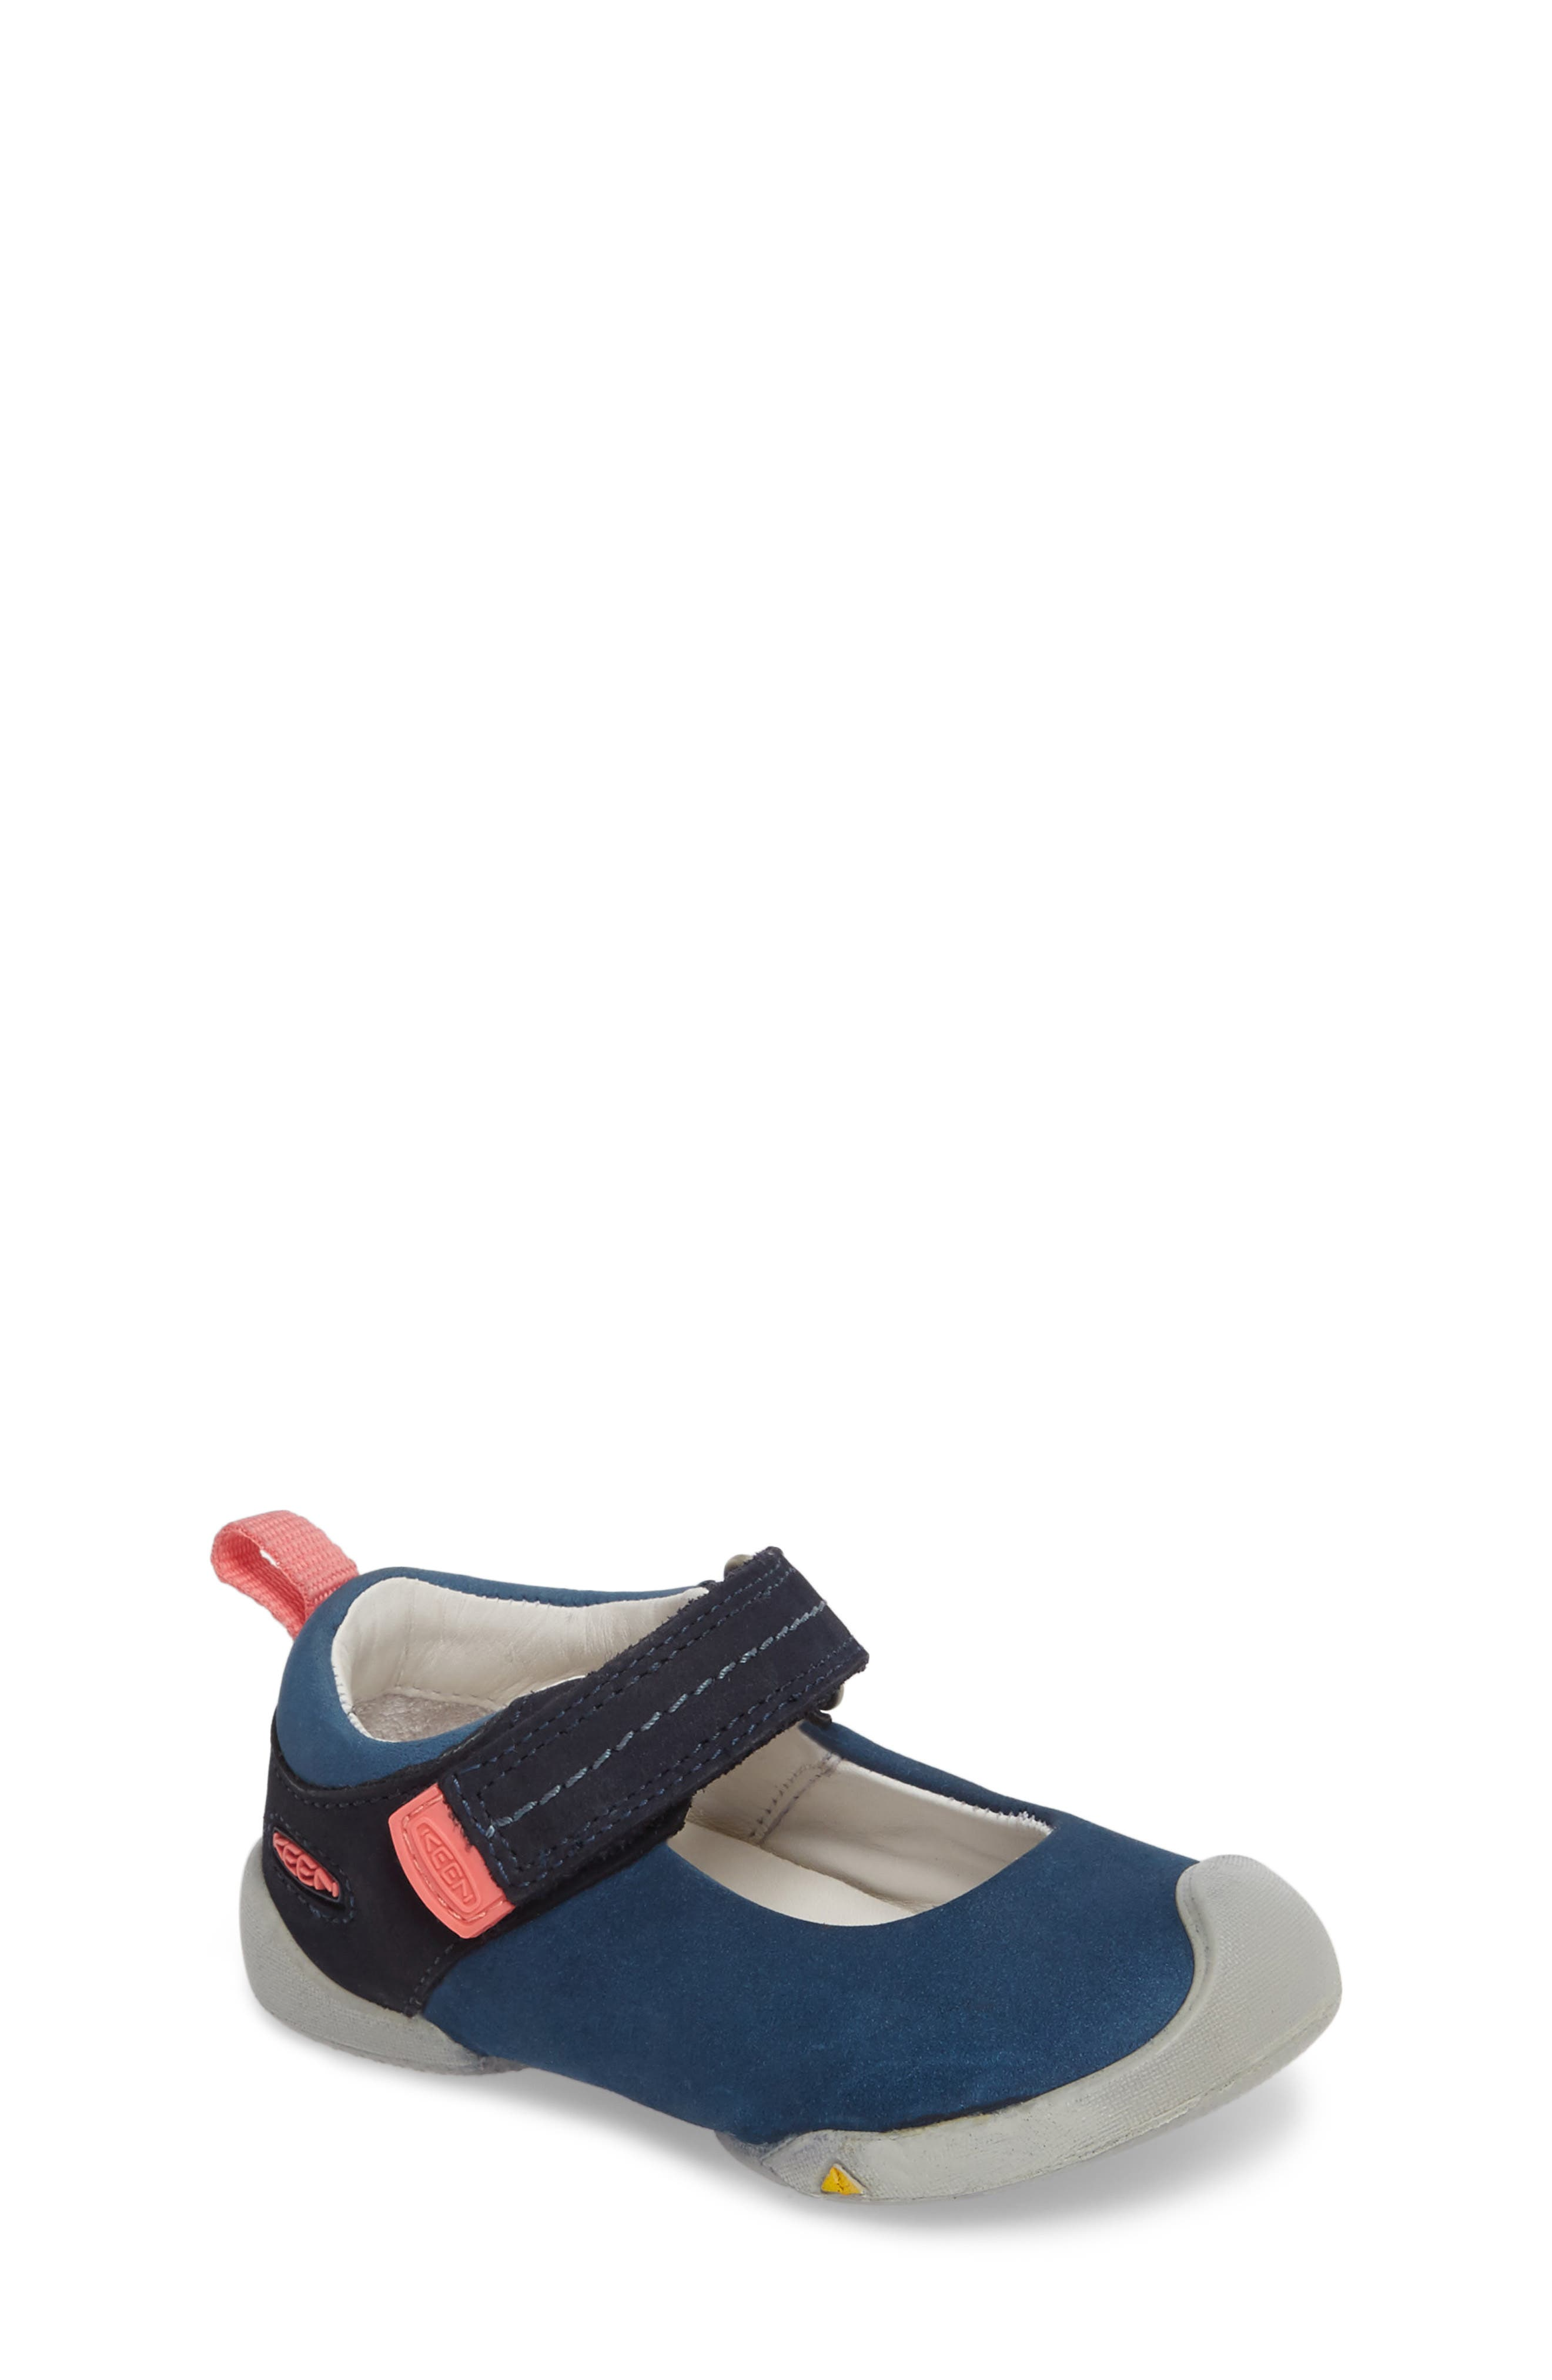 Pep Mary Jane-T Sneaker,                         Main,                         color, Dress Blues/ Sugar Coral